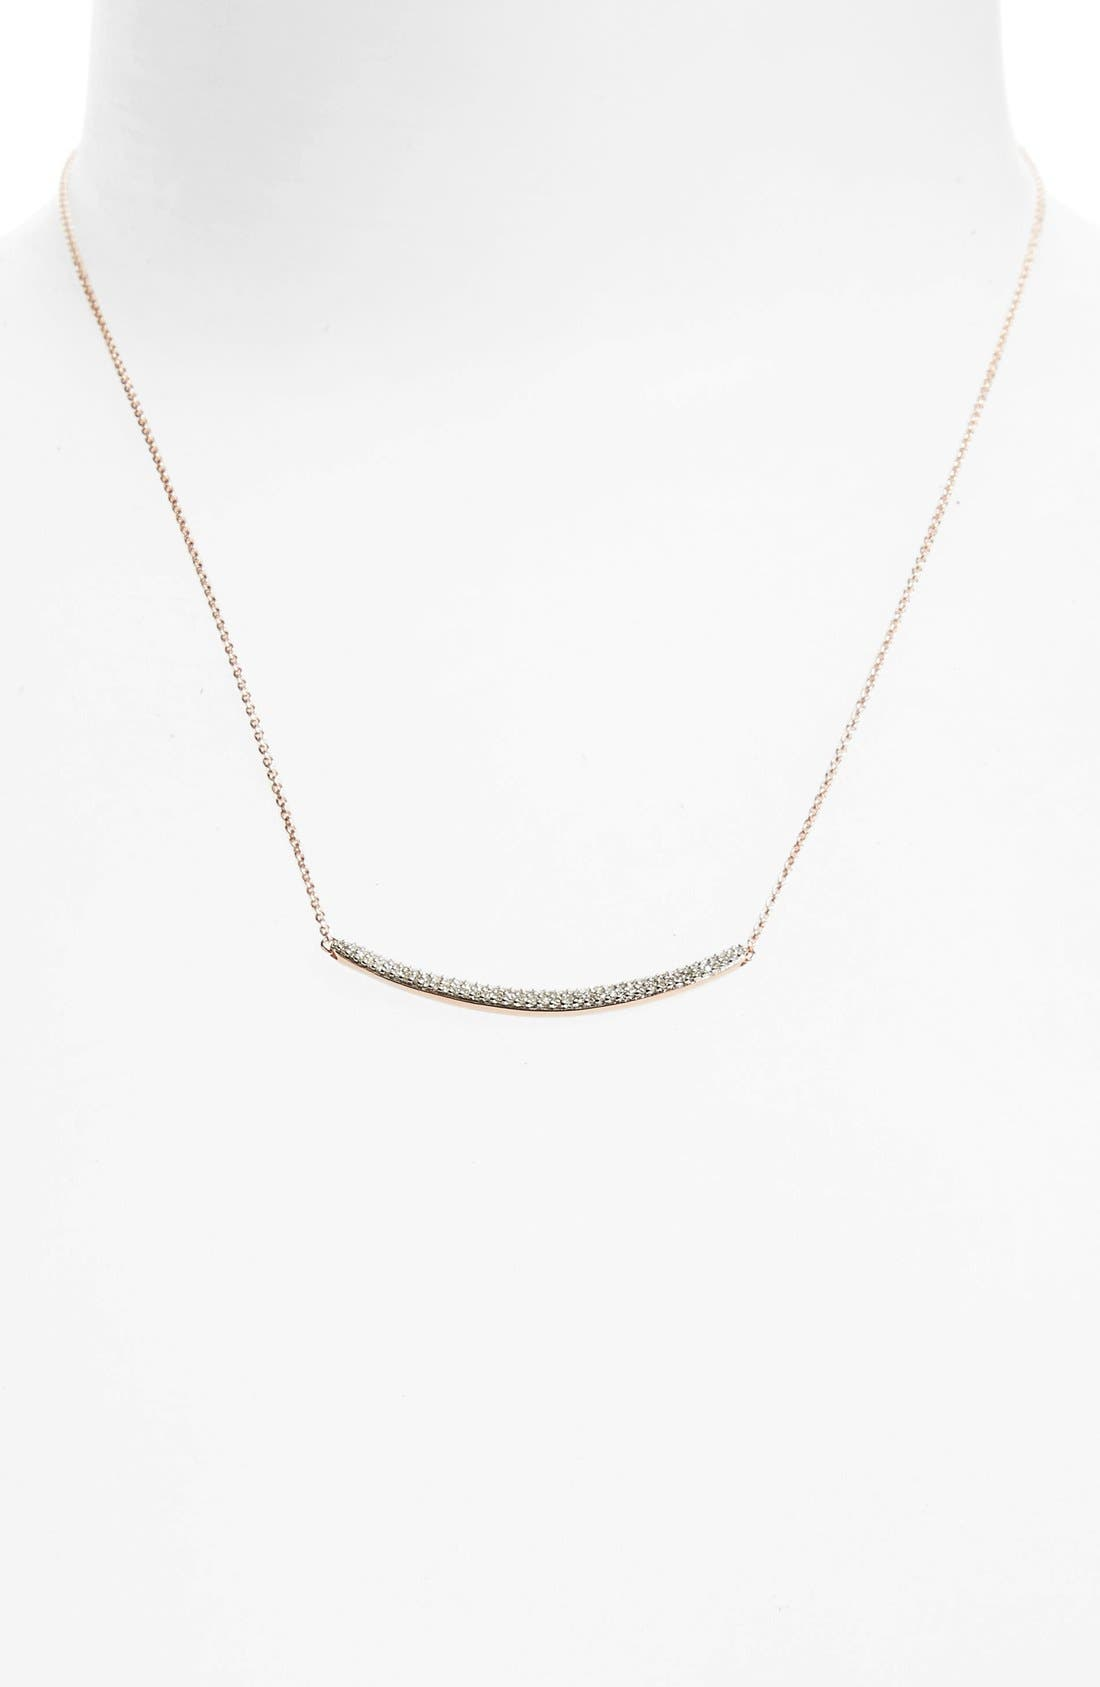 Skinny Diamond Necklace,                             Alternate thumbnail 5, color,                             ROSE GOLD